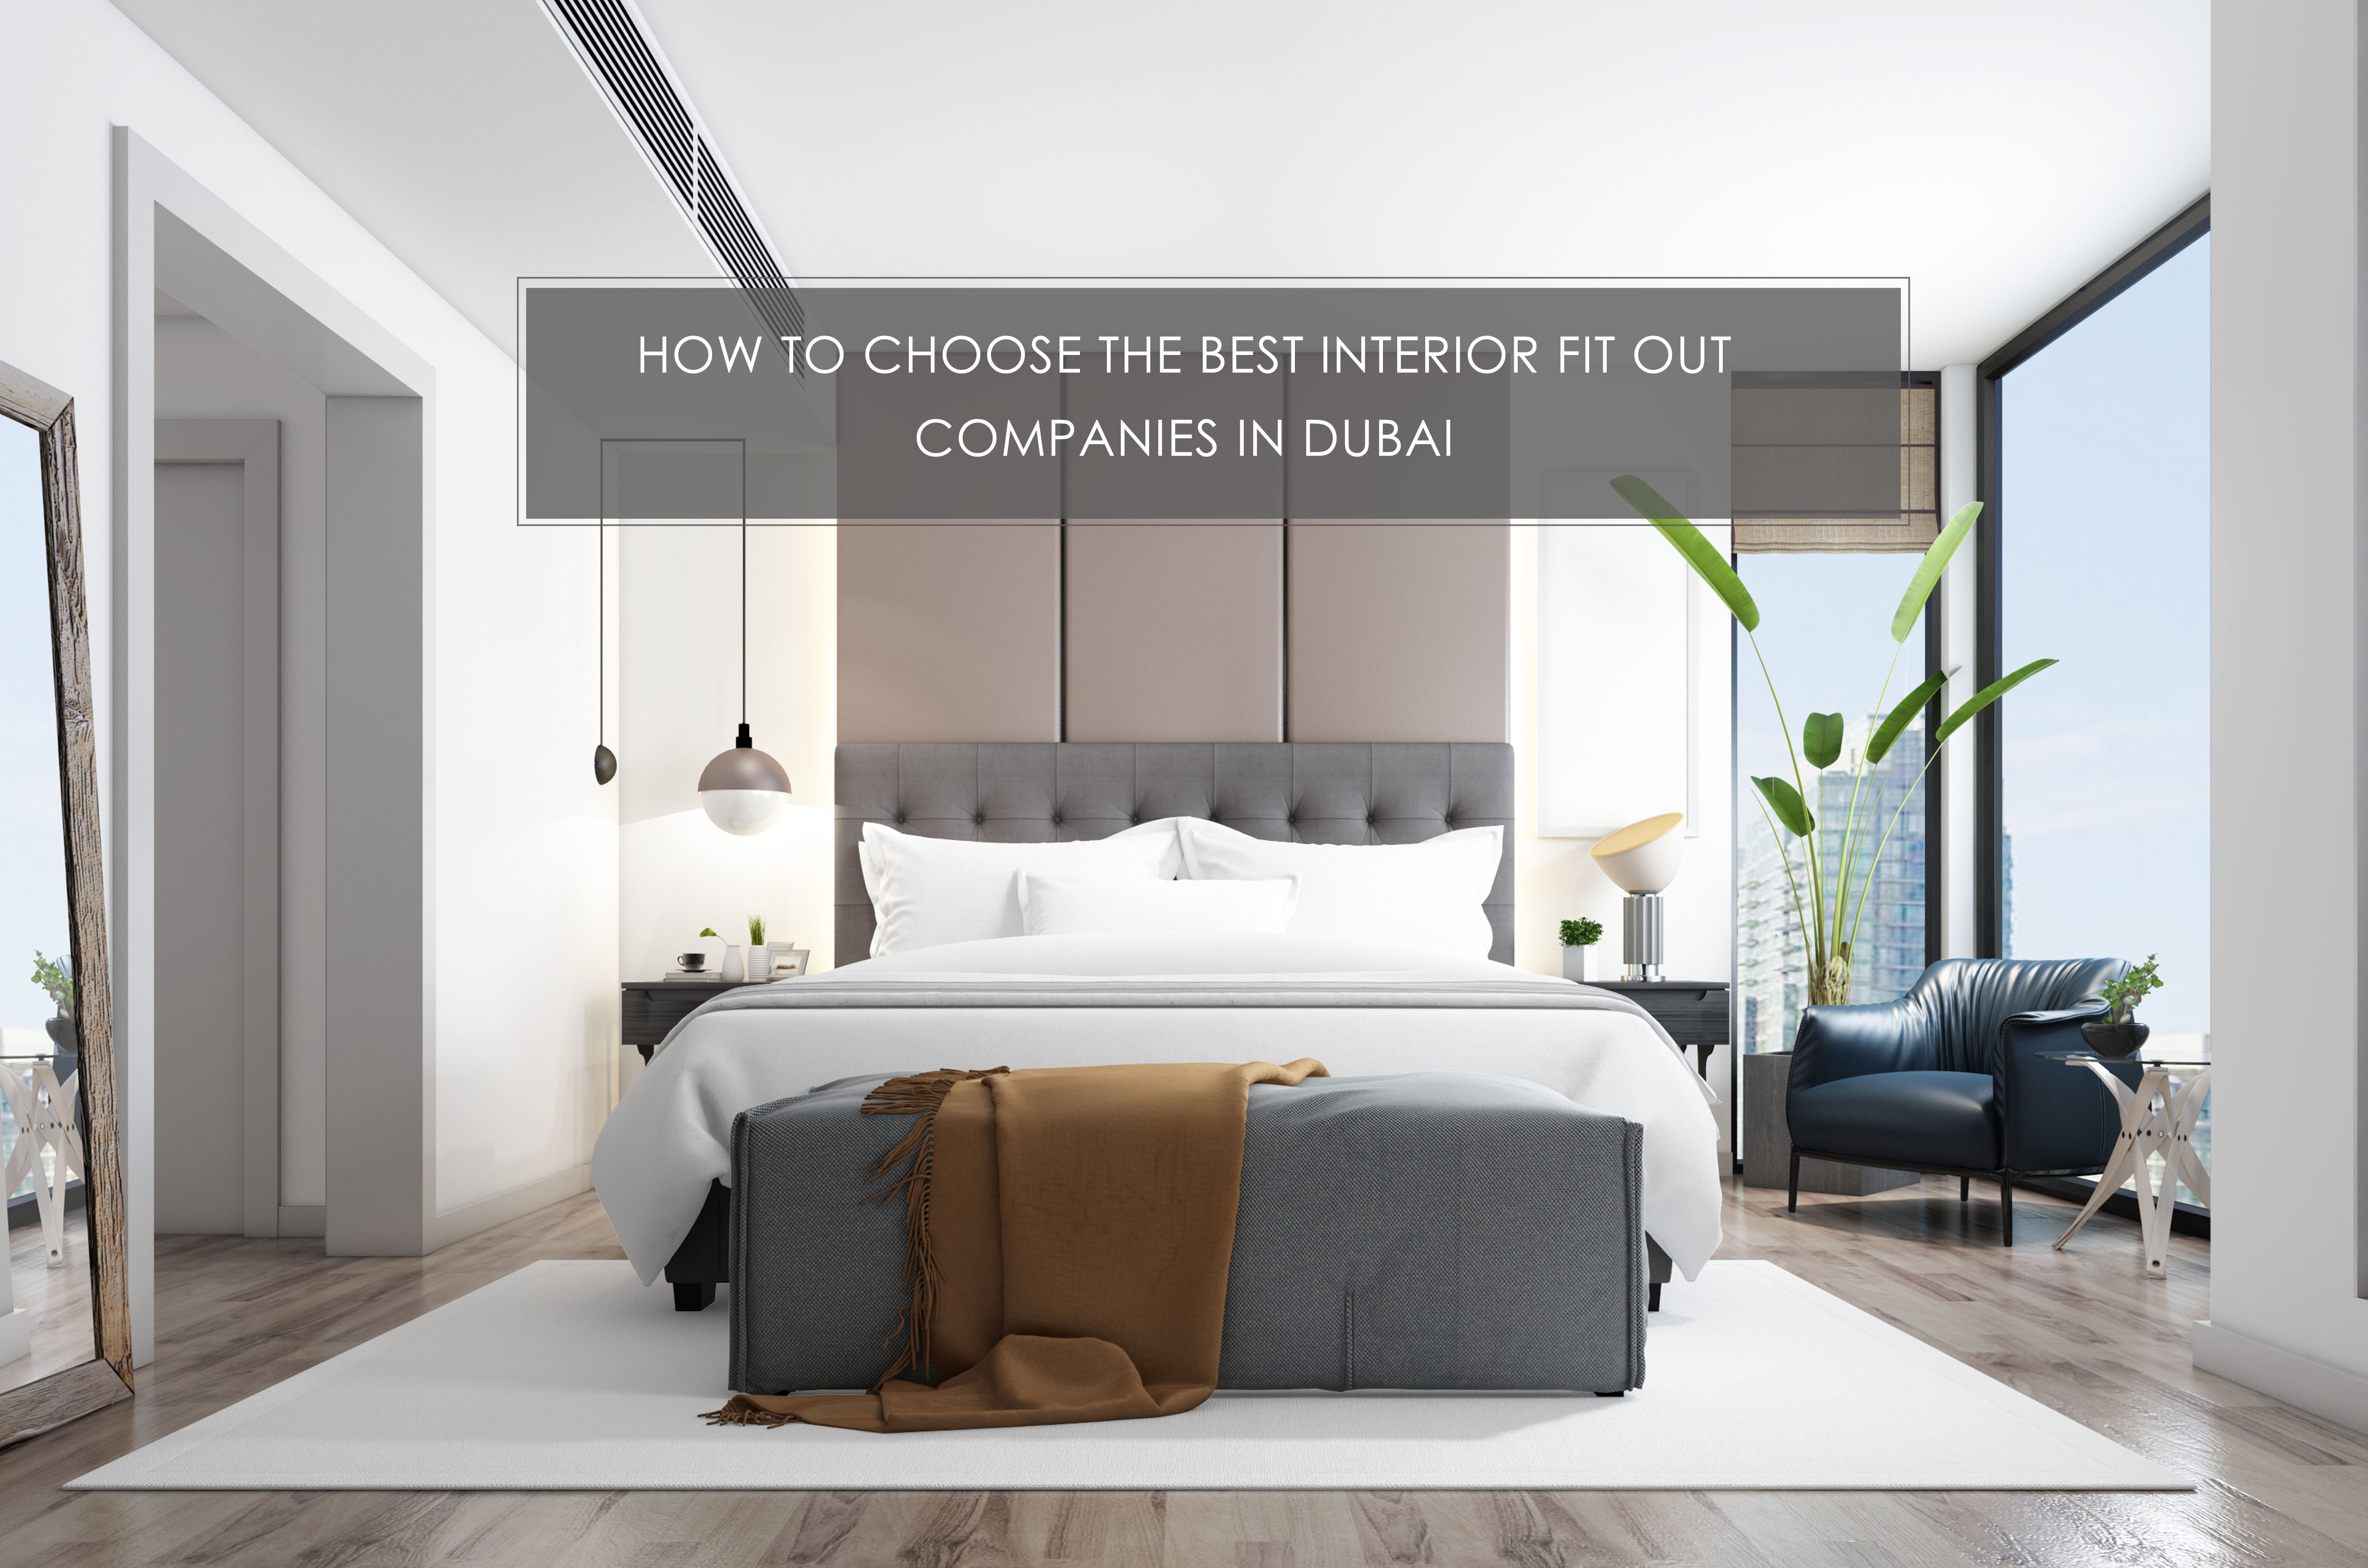 HOW TO CHOOSE THE BEST INTERIOR FIT OUT COMPANIES